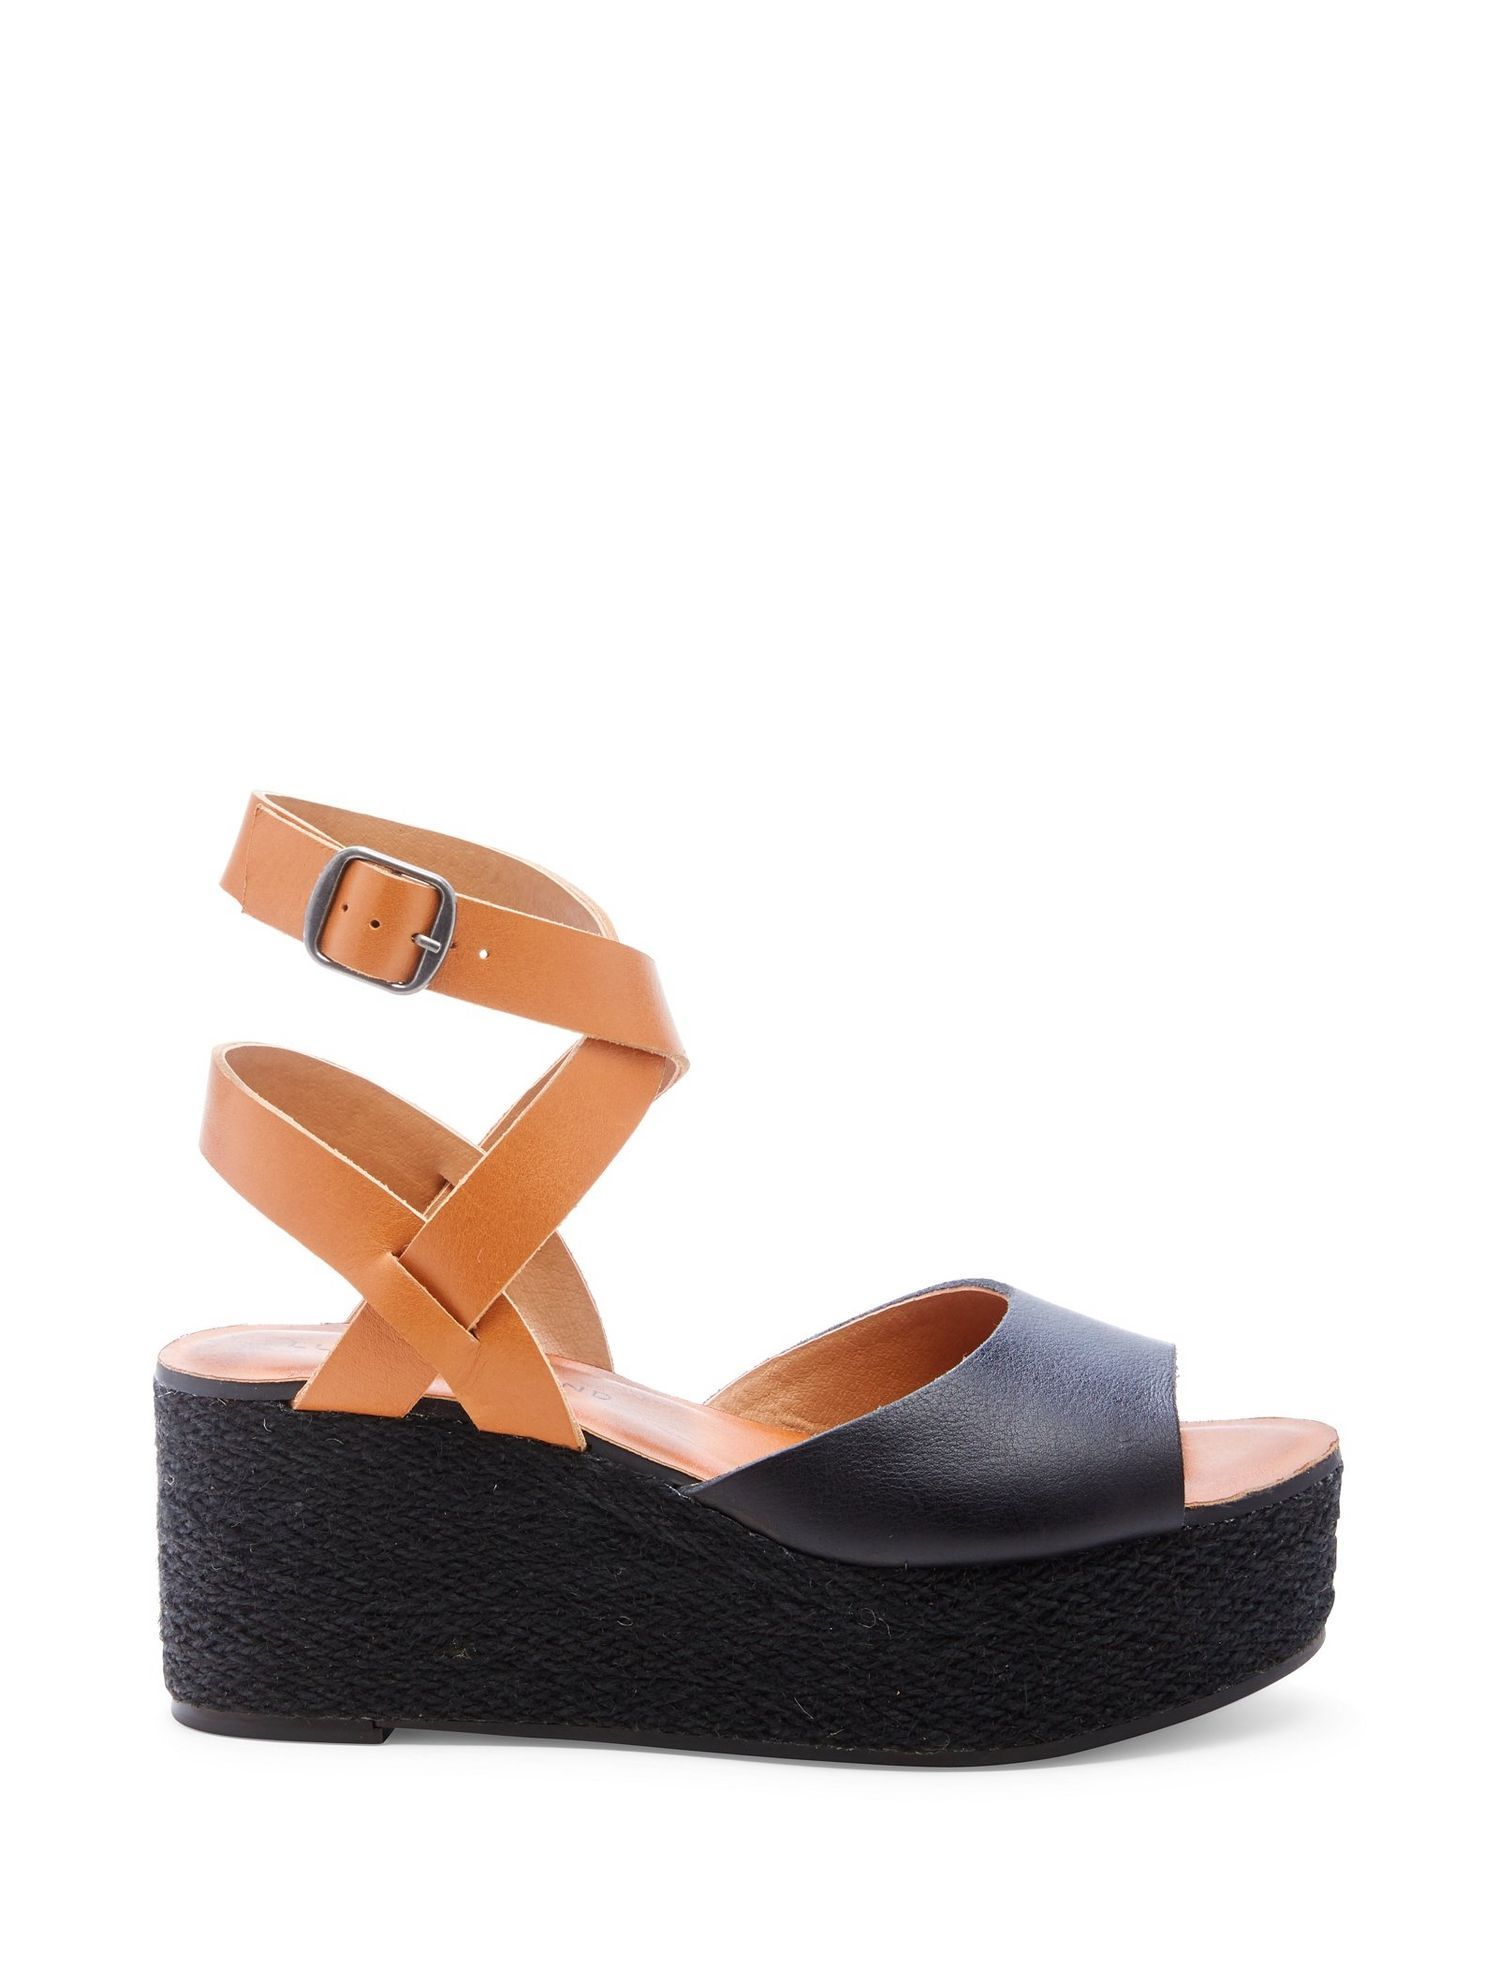 19b898136ef Ginny Wedge | shoes ❤ | Womens shoes wedges, Wedges, Wedge shoes